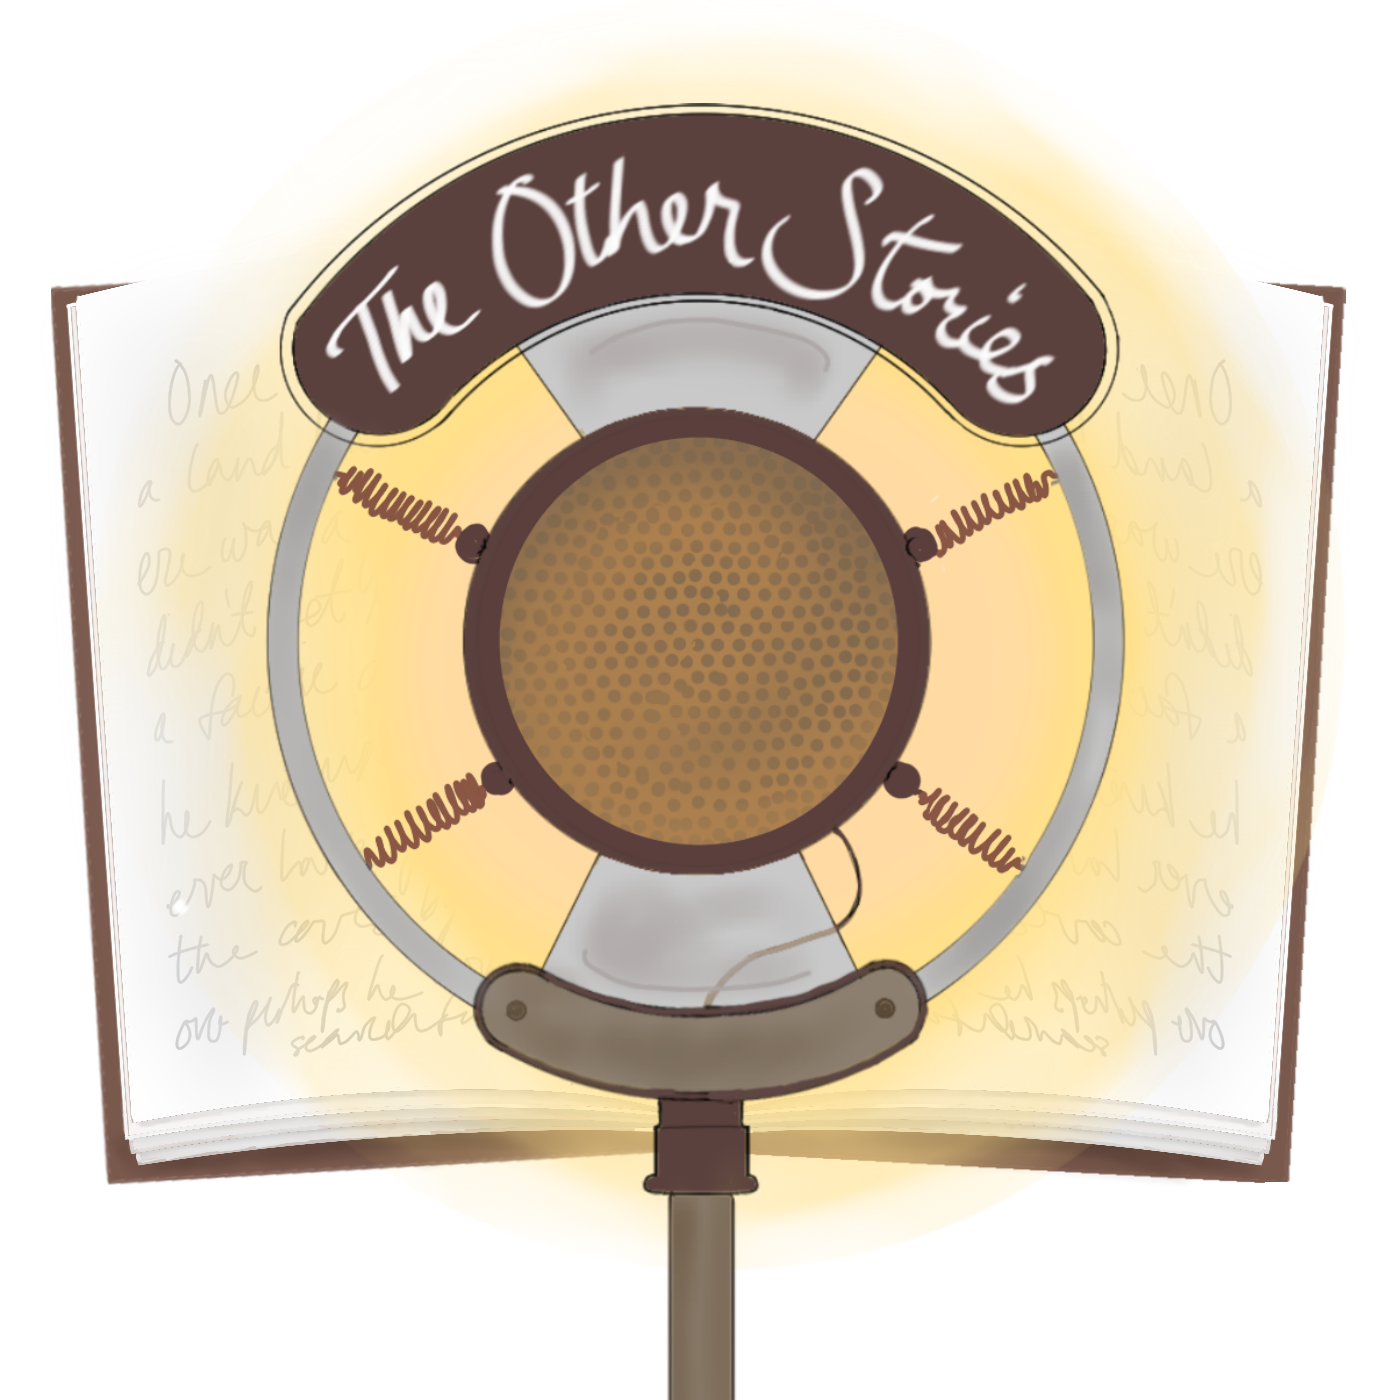 The Other Stories show art